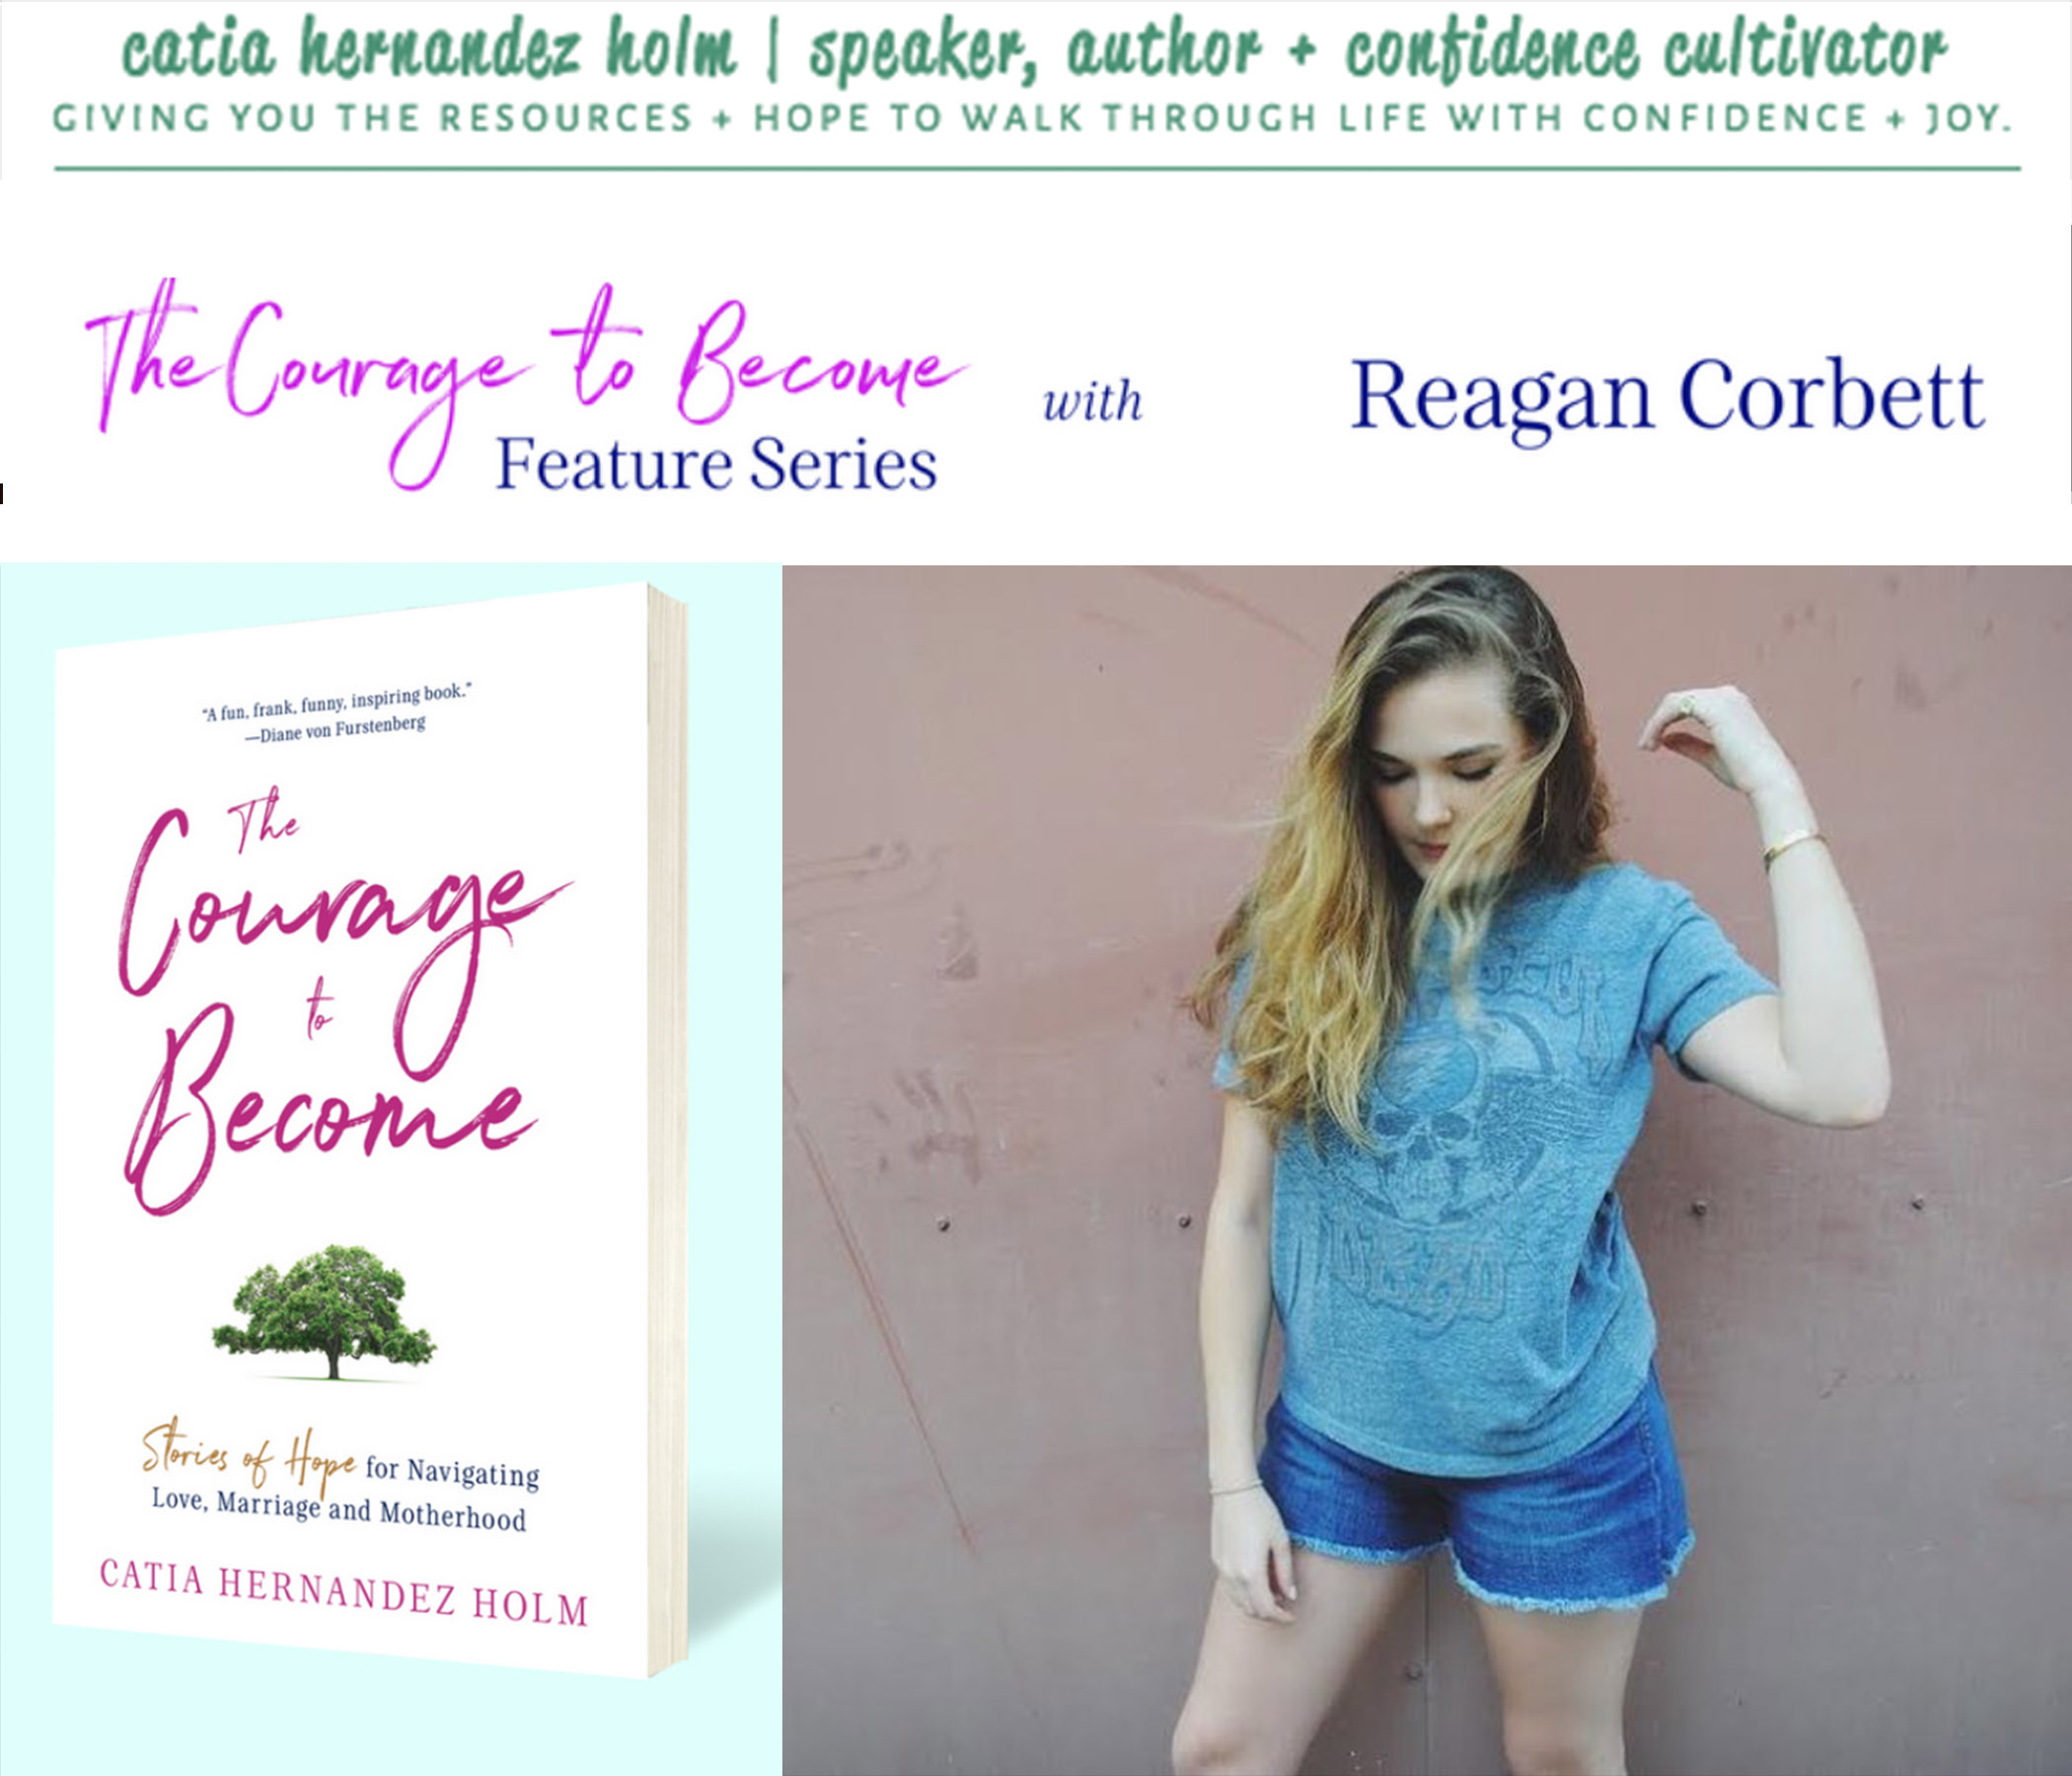 The Courage to Become Feature Series: Reagan Corbett #reagART - Catia Hernandez Holm brings inspirational stories and encouragement from women who are doing the DAMN thing!